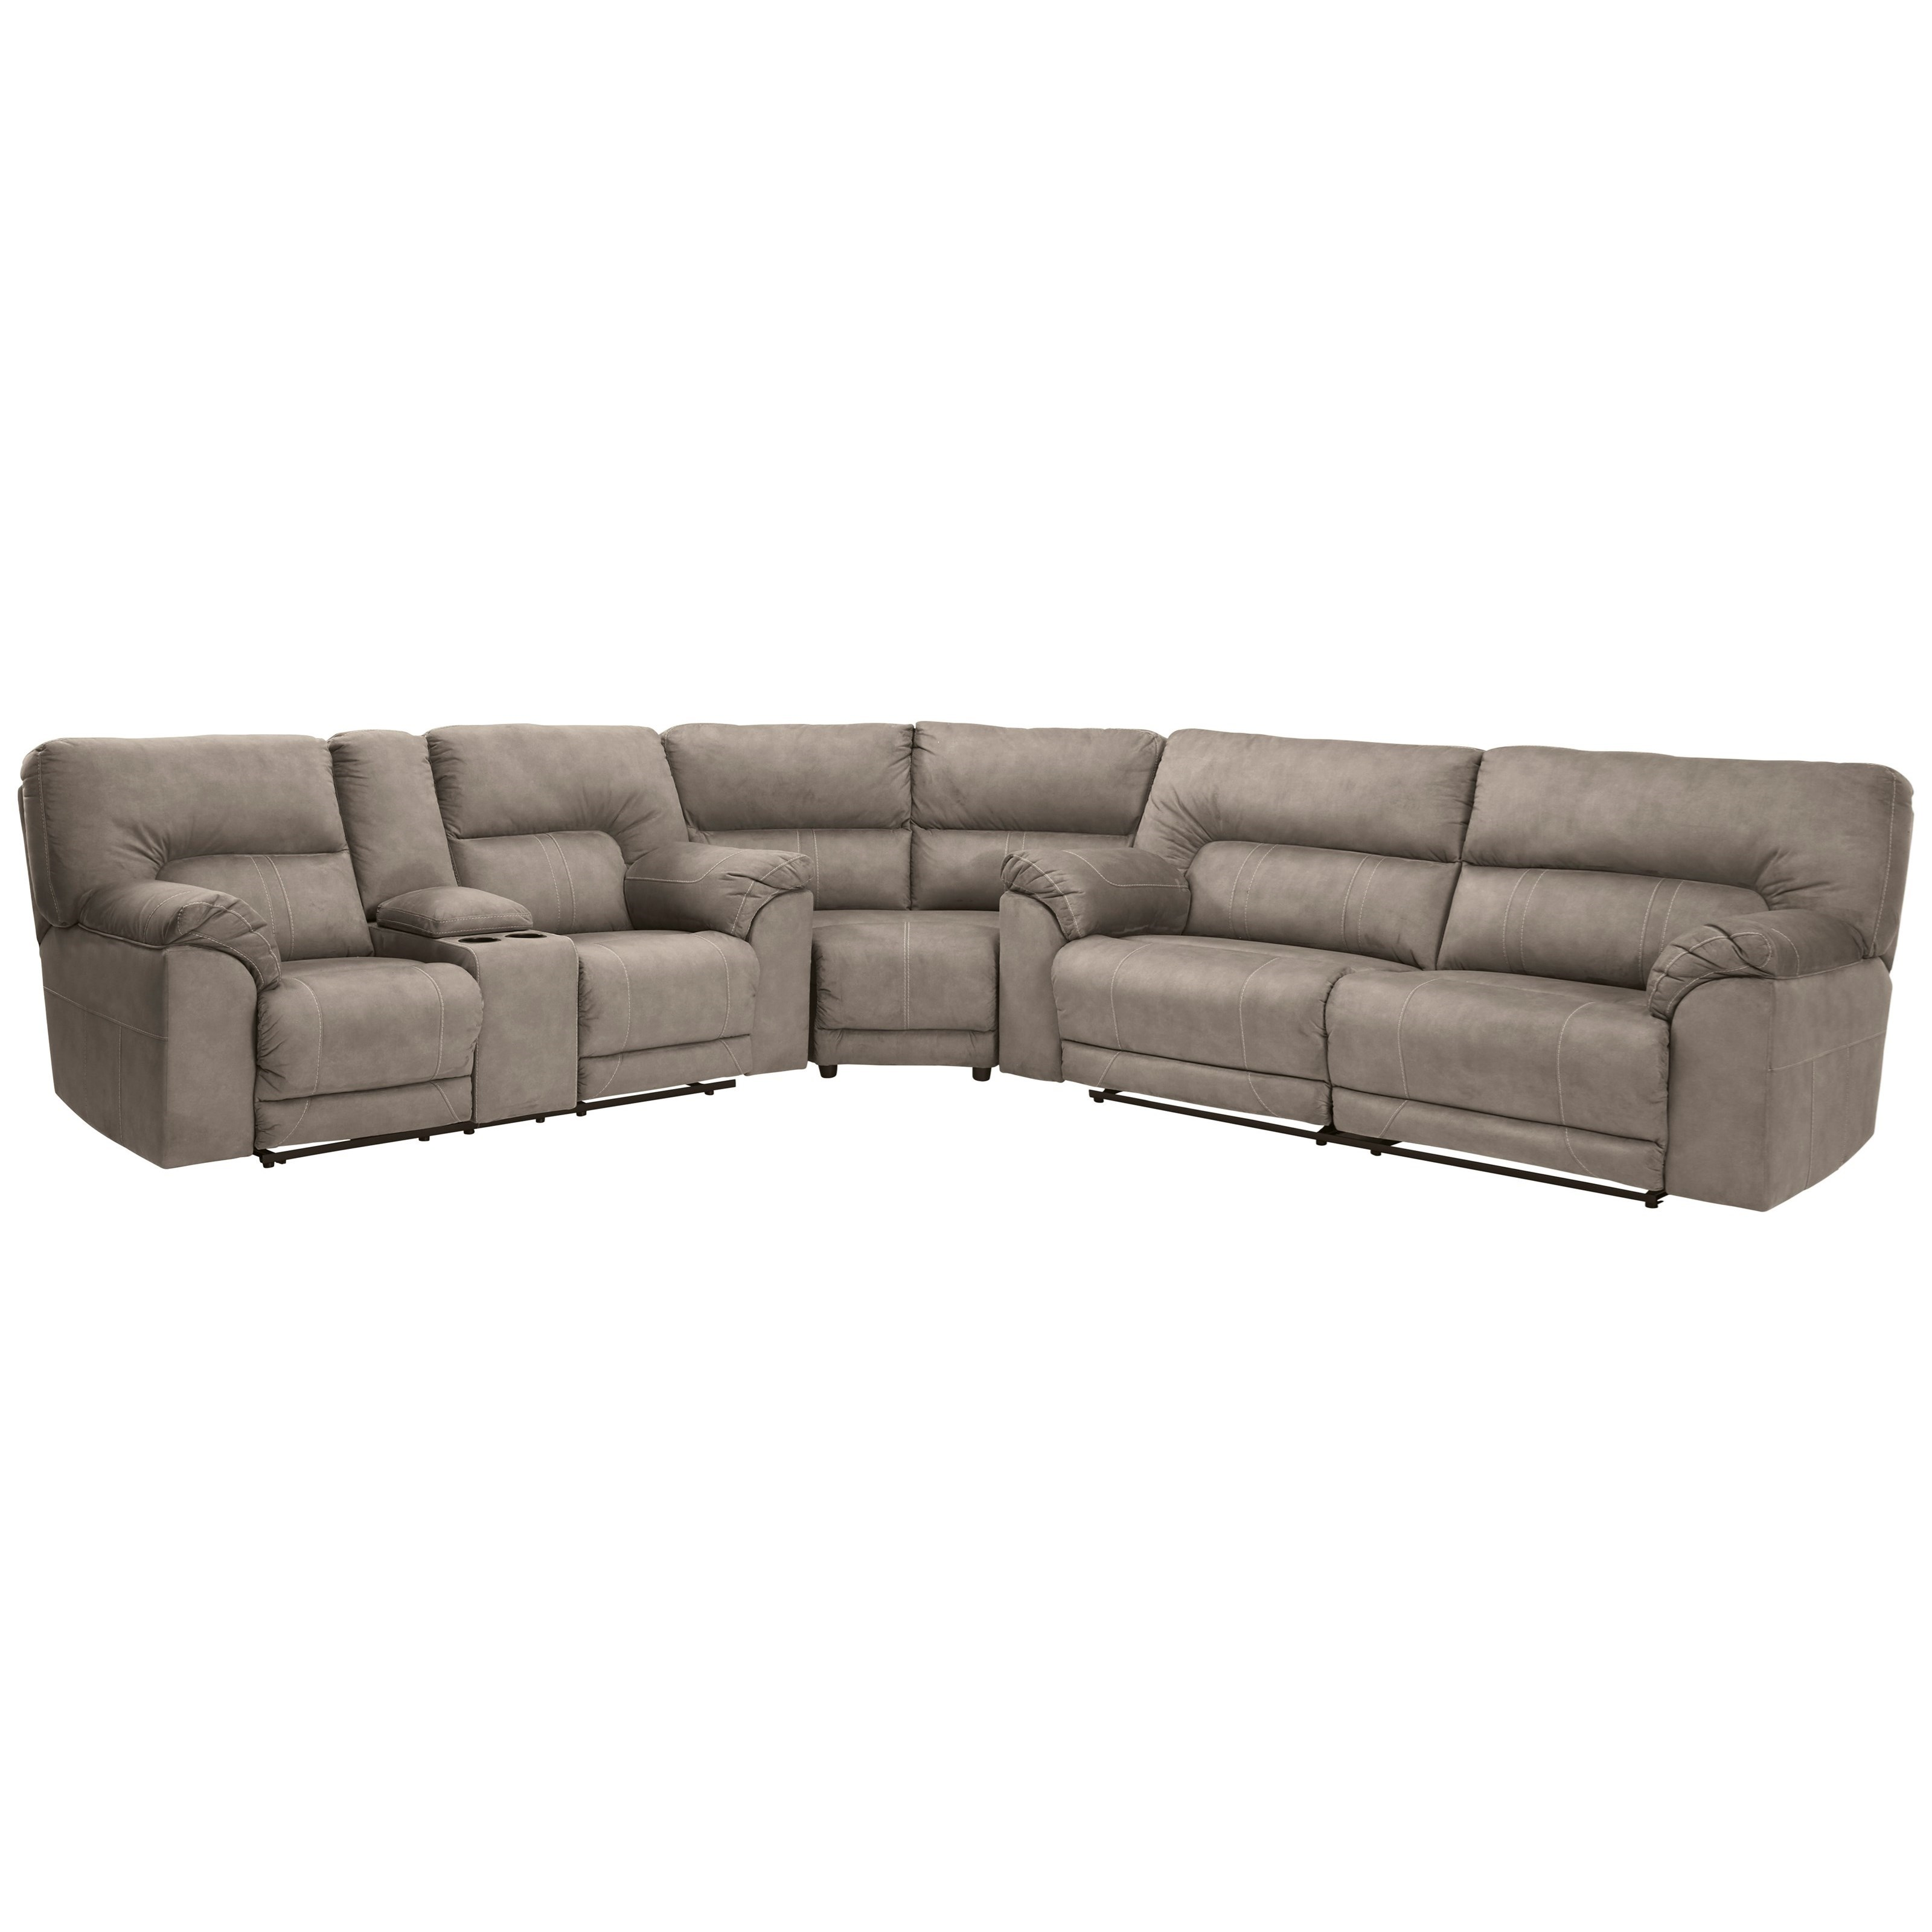 Cavalcade Reclining Sectional by Benchcraft at Miller Waldrop Furniture and Decor